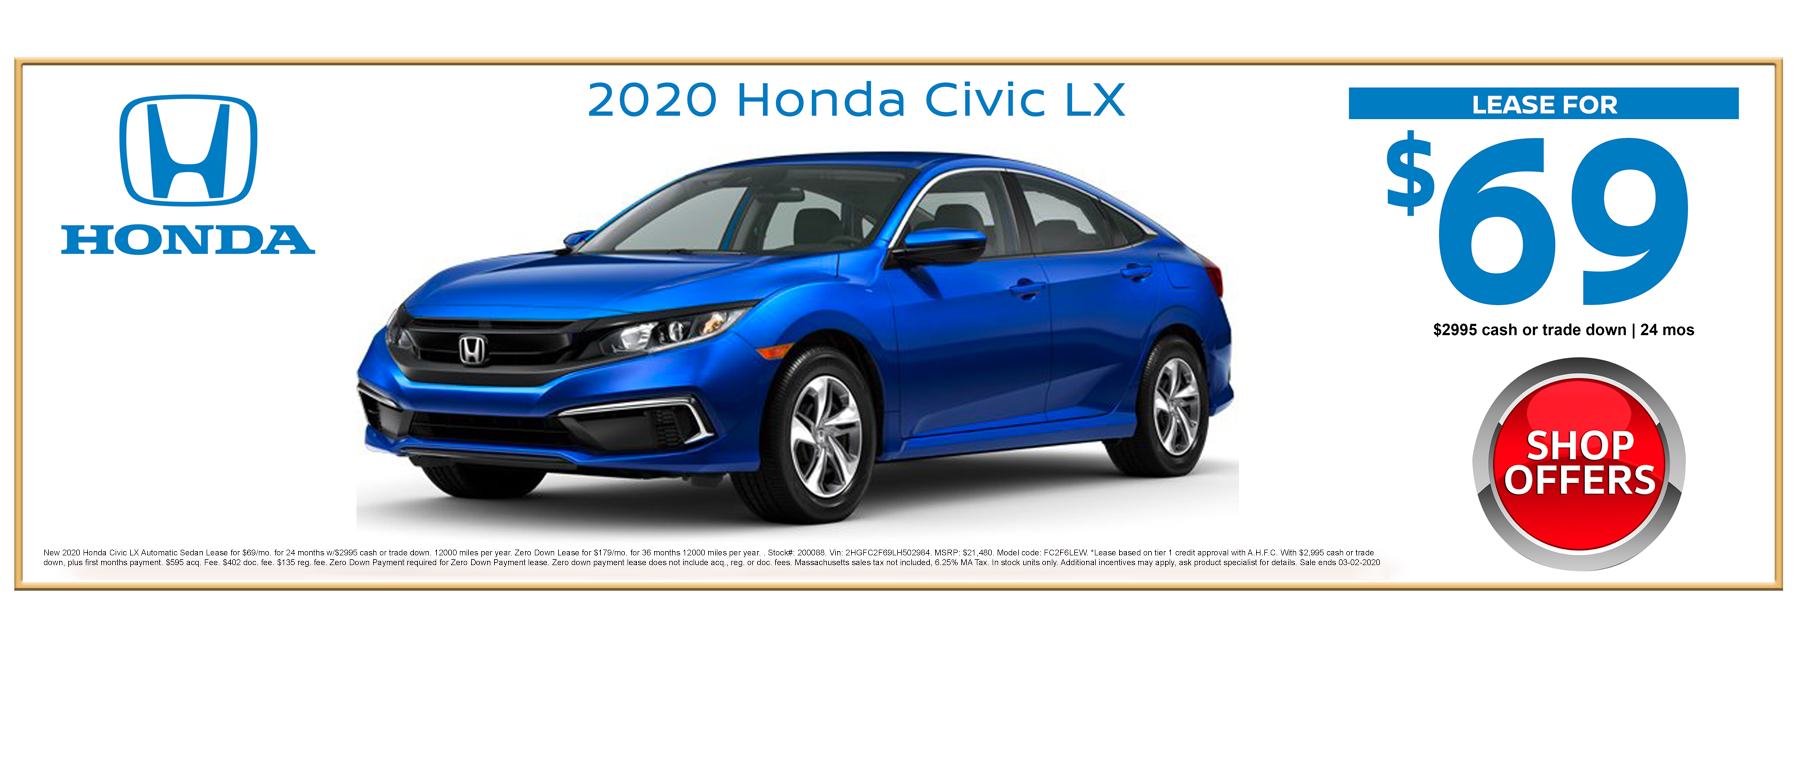 2020 Honda Civic LX Sedan February Lease Special at Kelly Honda